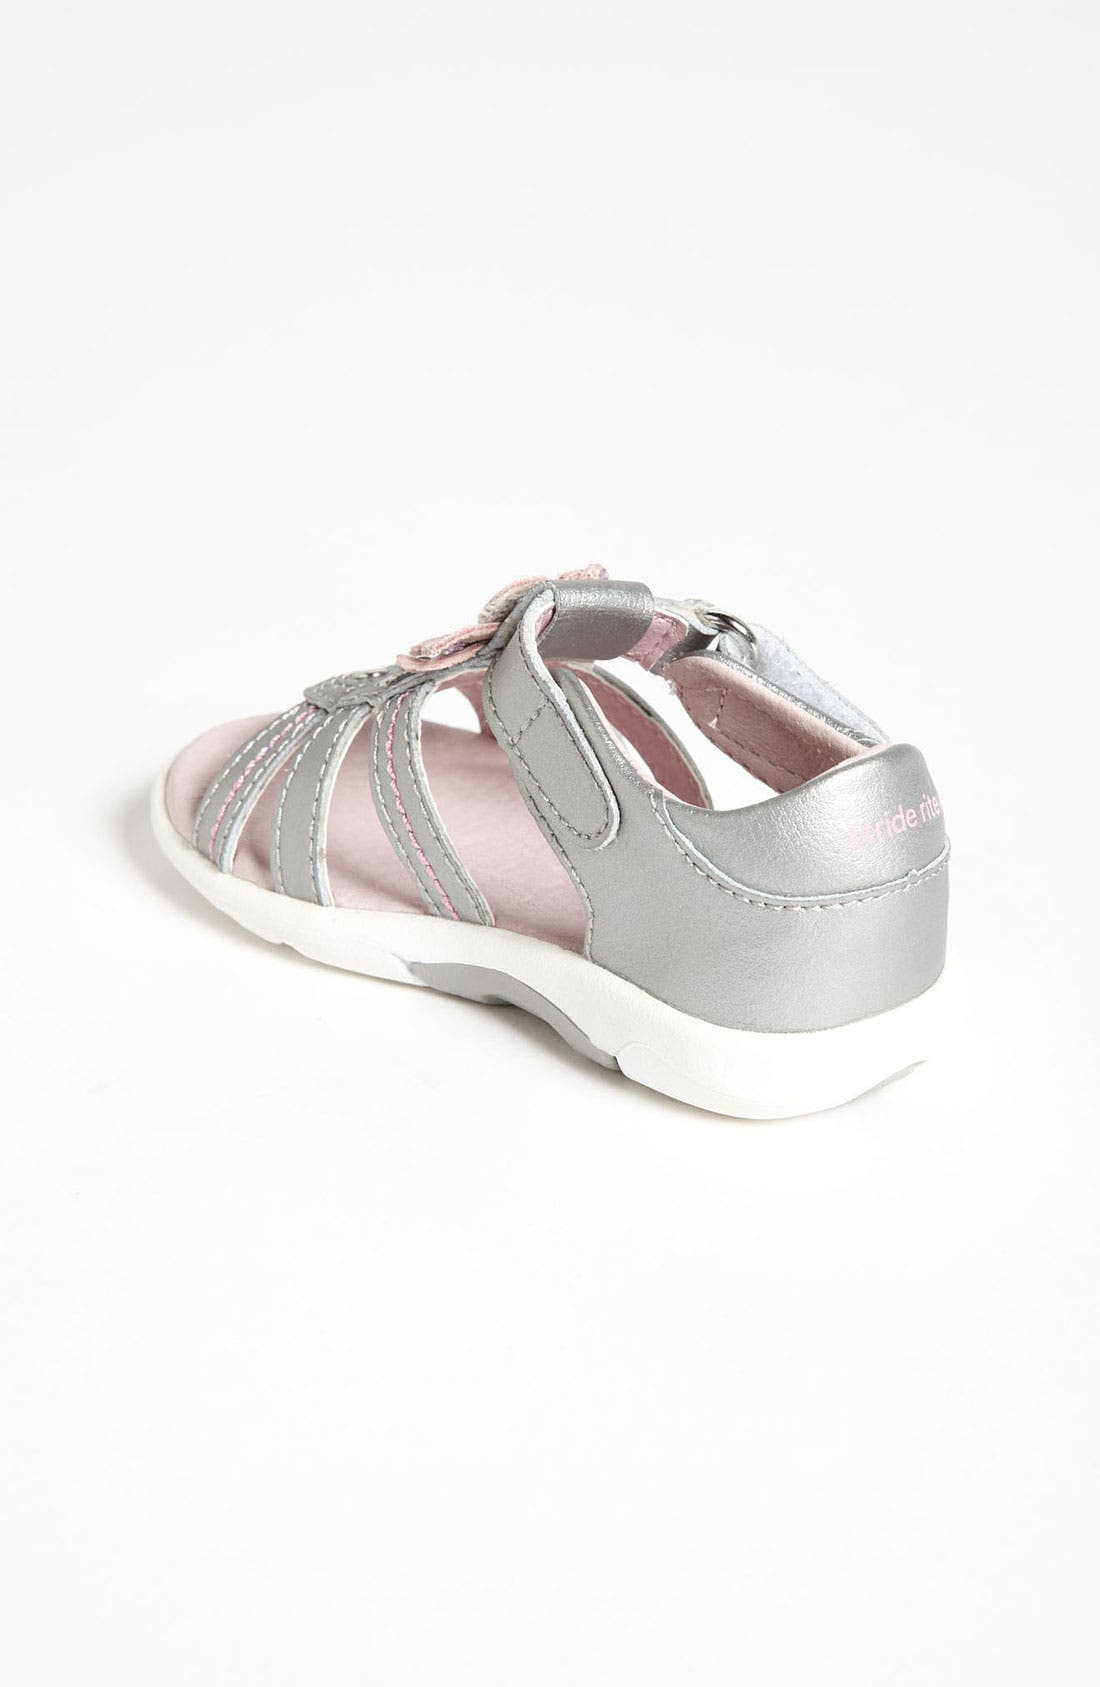 Alternate Image 2  - Stride Rite 'Brenna' Sandal (Baby, Walker & Toddler)